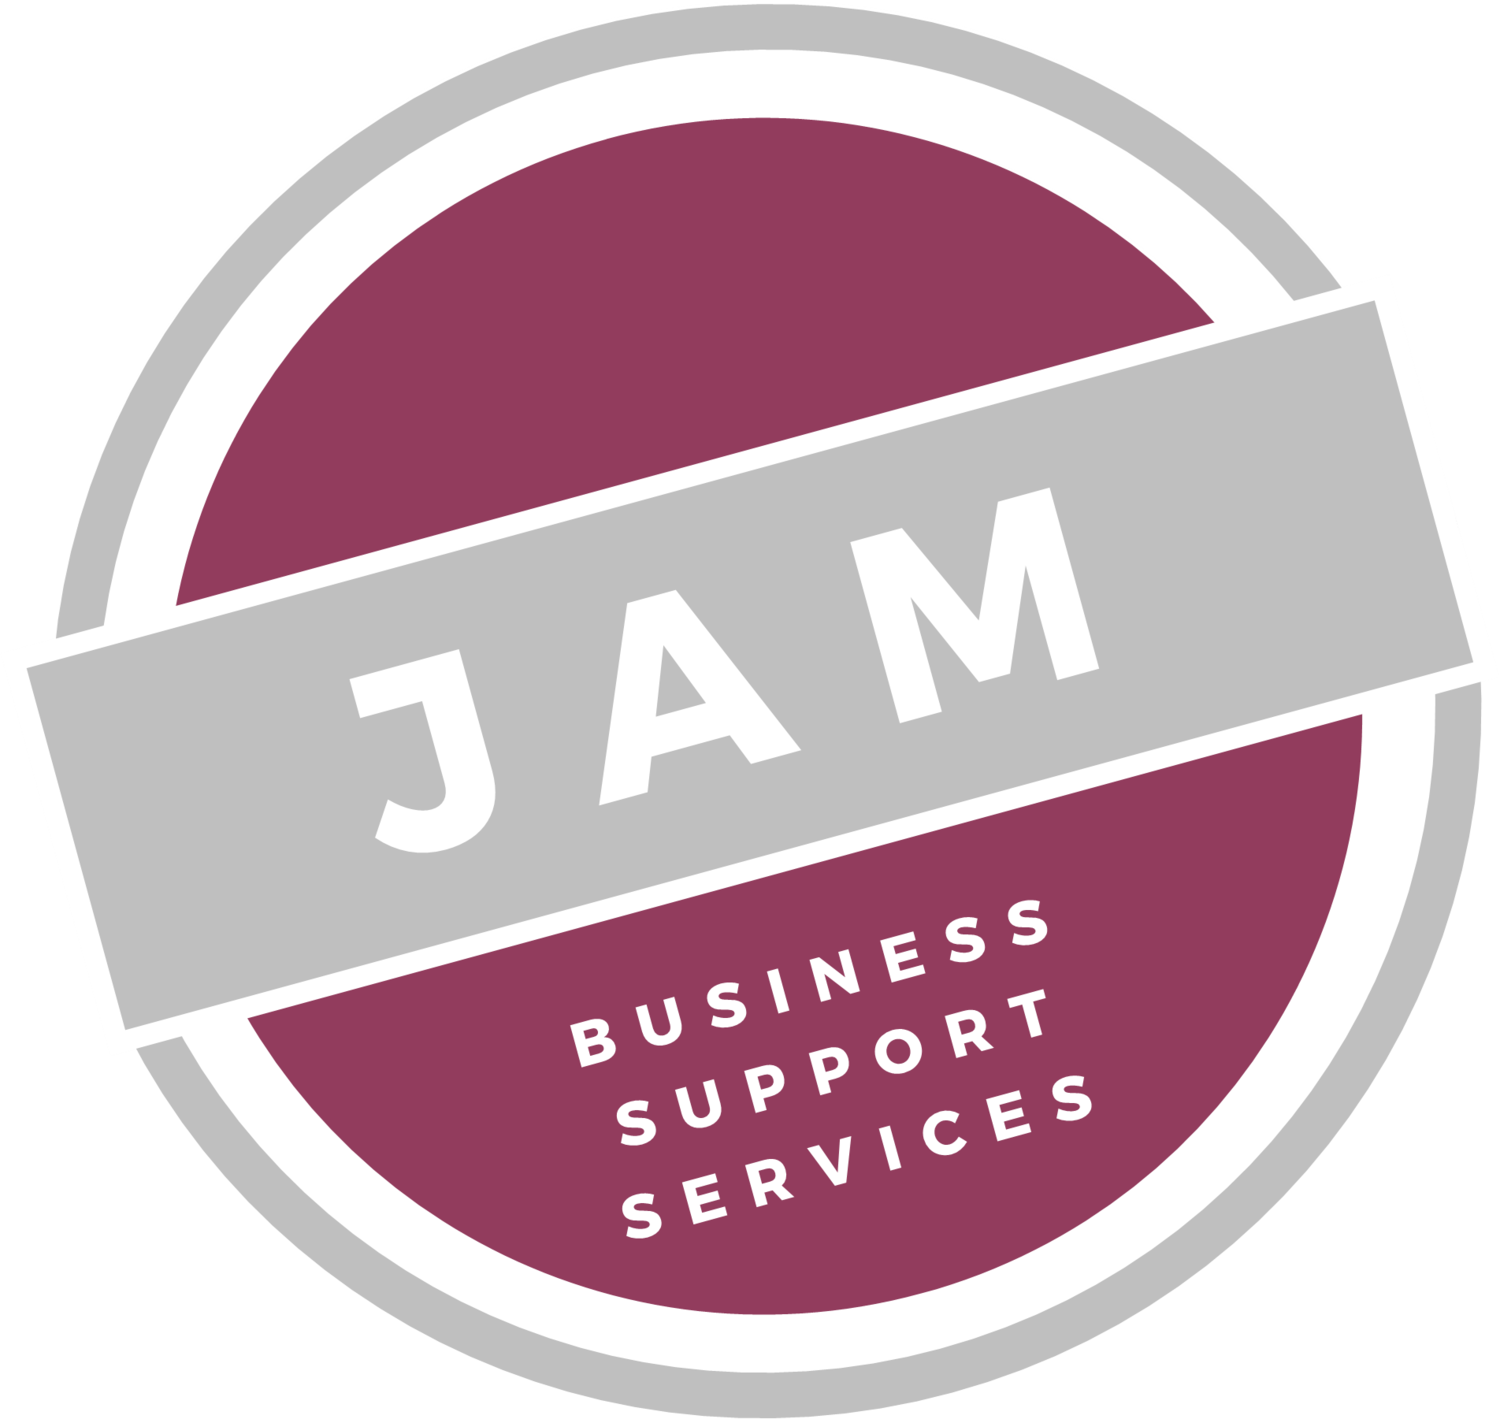 Australian Virtual Assistant | business support services | Blue Mountains based | JAM Business Support Services